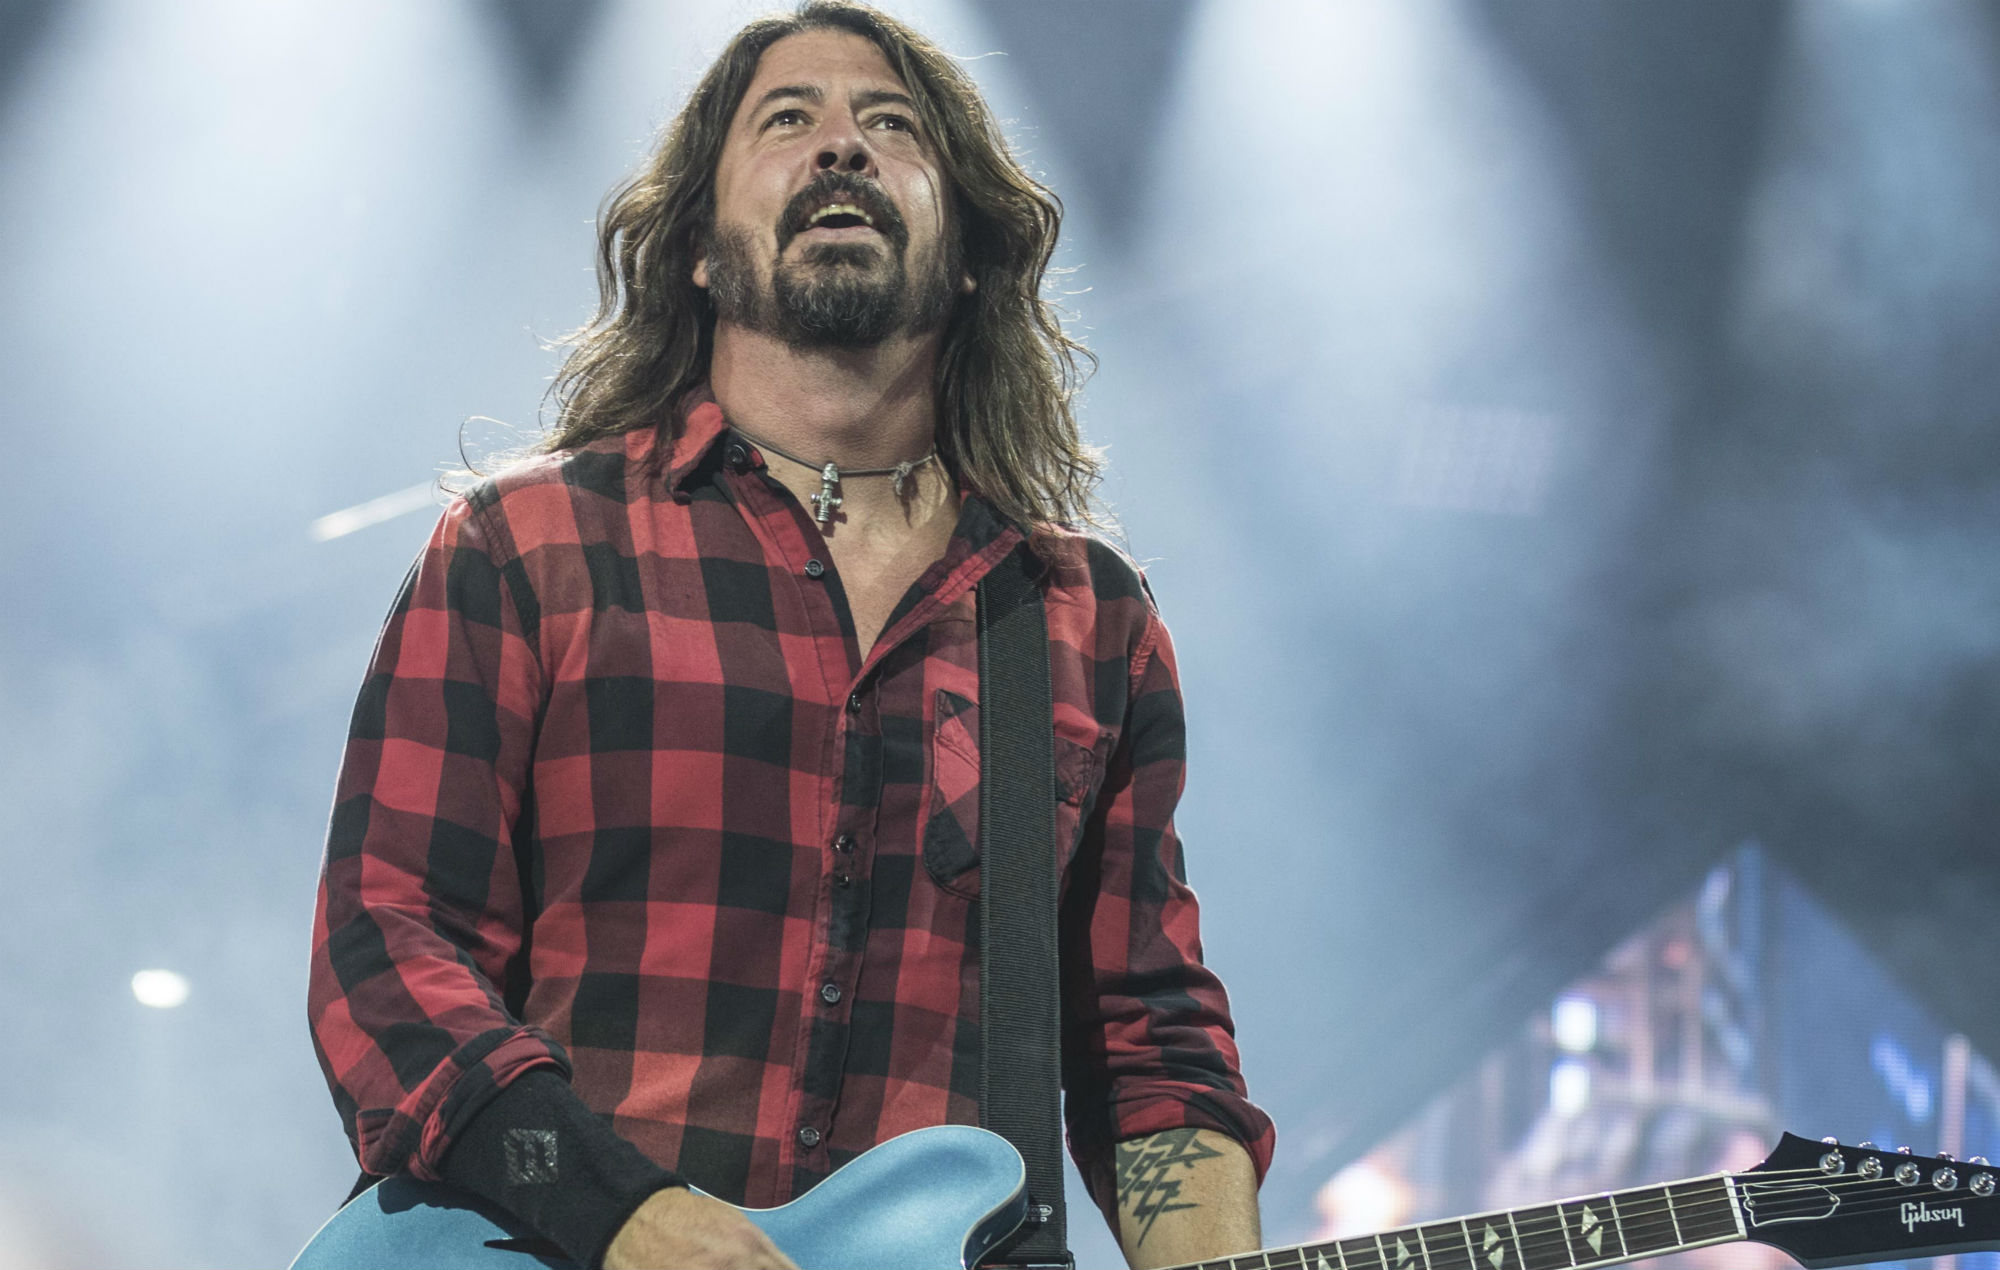 """His ass is so fired!"": Dave Grohl left in hysterics as drunk guy hijacks Foo Fighters show"